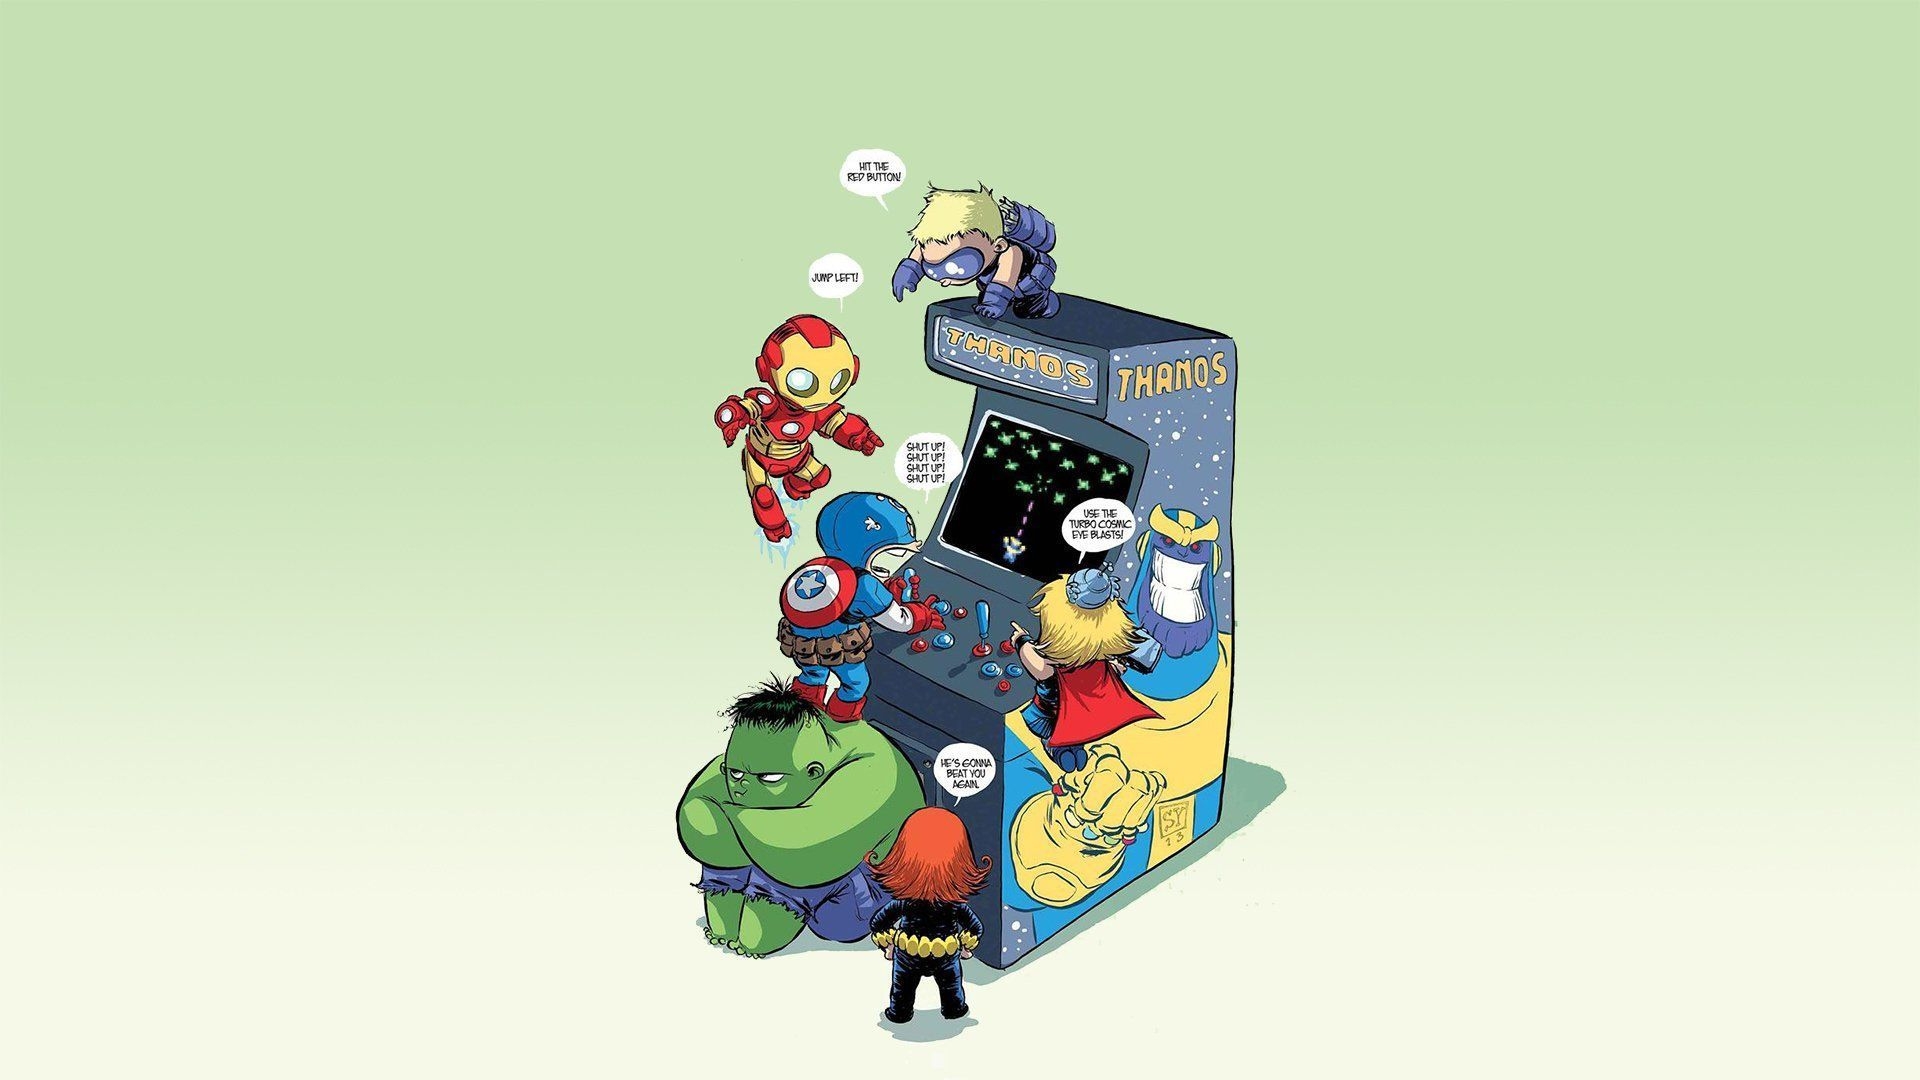 Baby Avengers Wallpapers Top Free Baby Avengers Backgrounds Wallpaperaccess